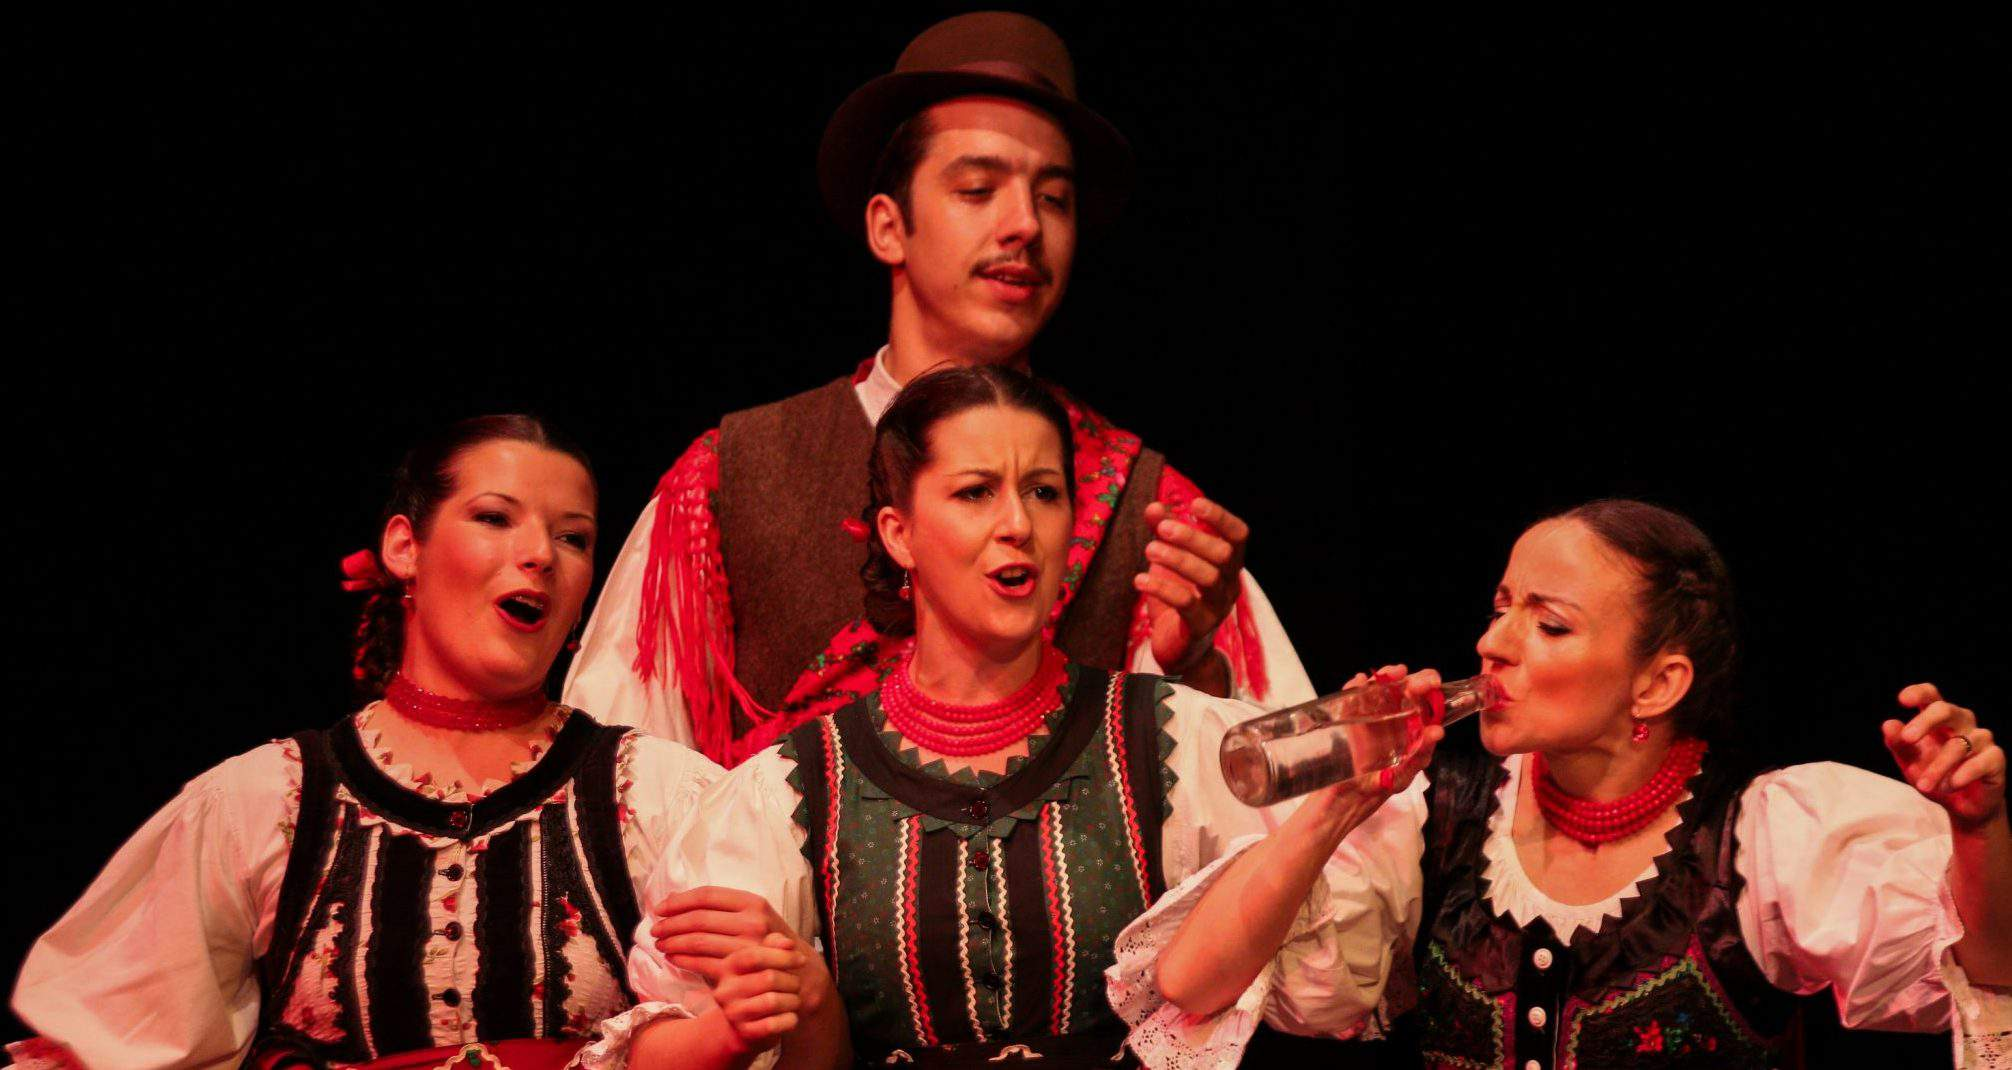 The UK's only Transylvanian festival of arts and culture - Góbéfest in June, 2018